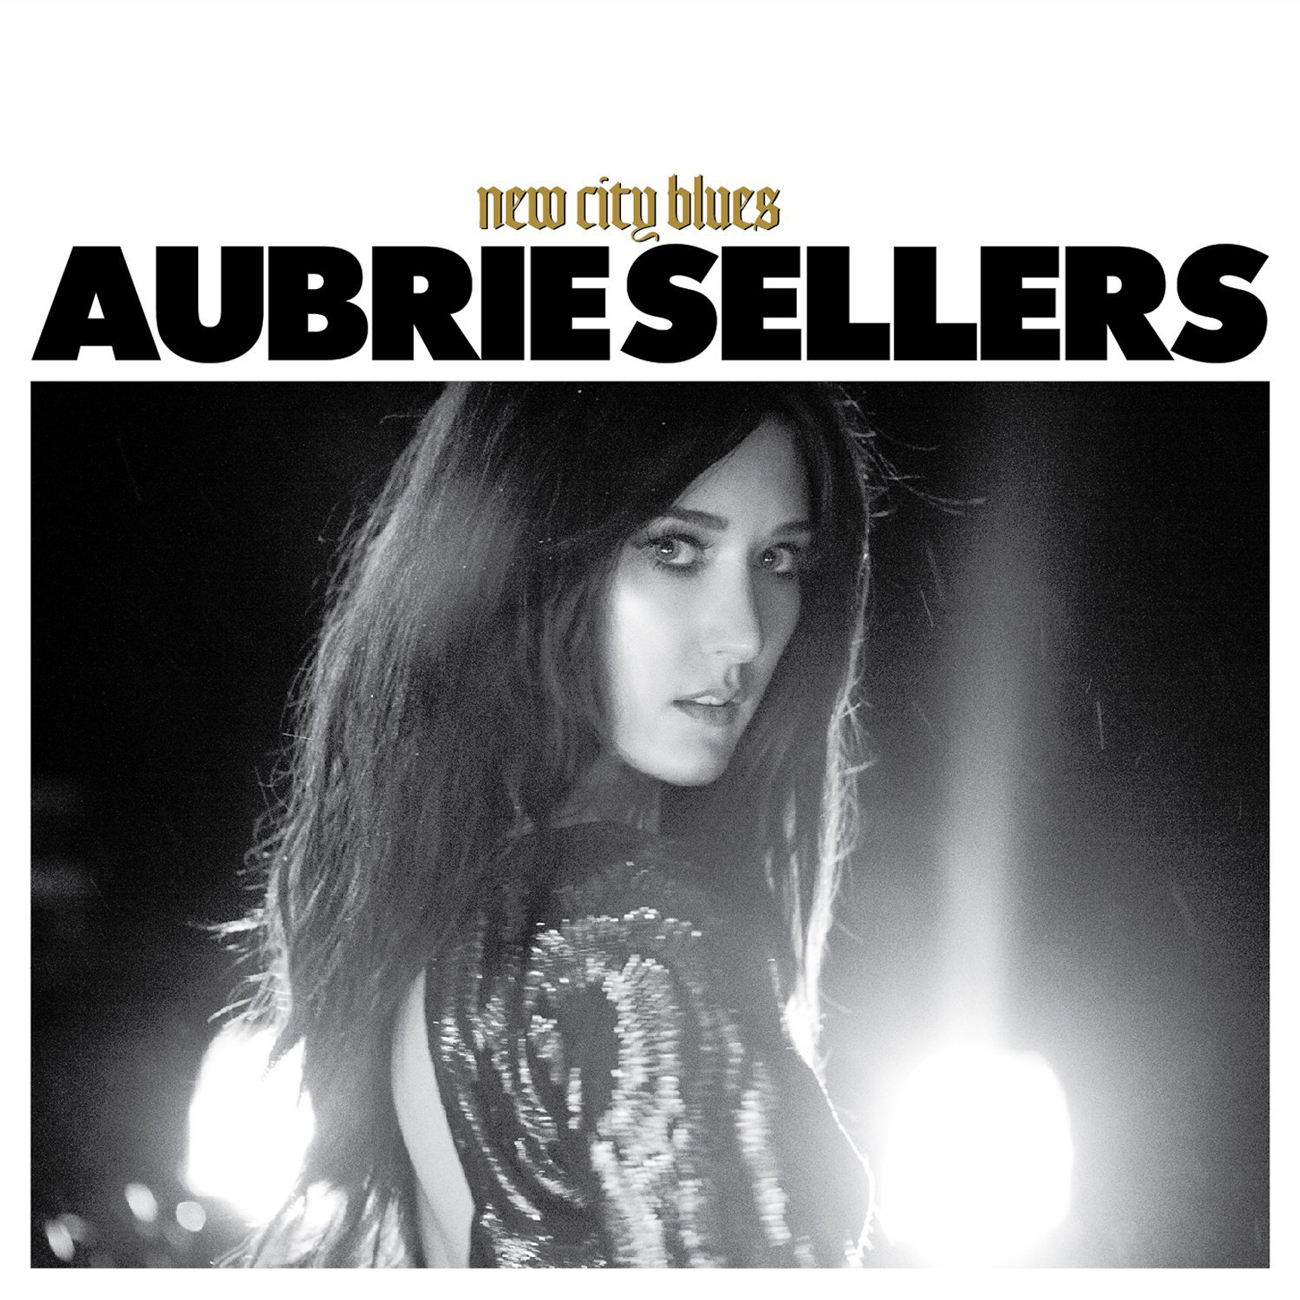 Aubrie Sellers, New City Blues cover art. Photo provided.